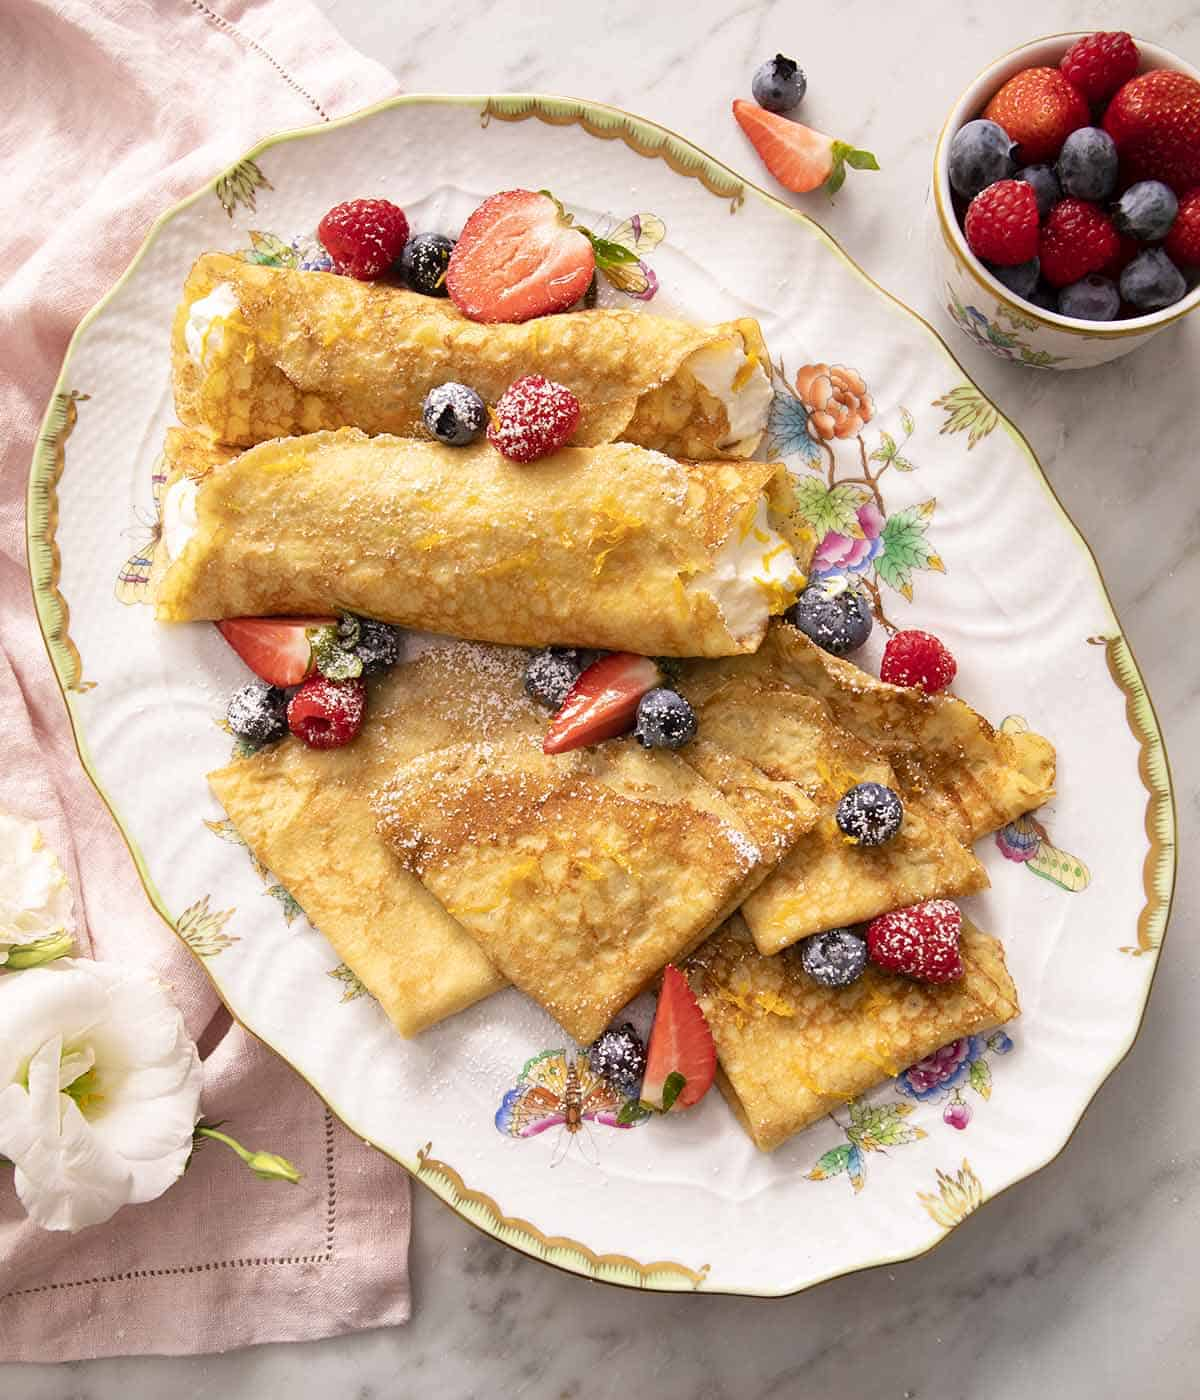 A large platter with crepes and berries on a marble surface.